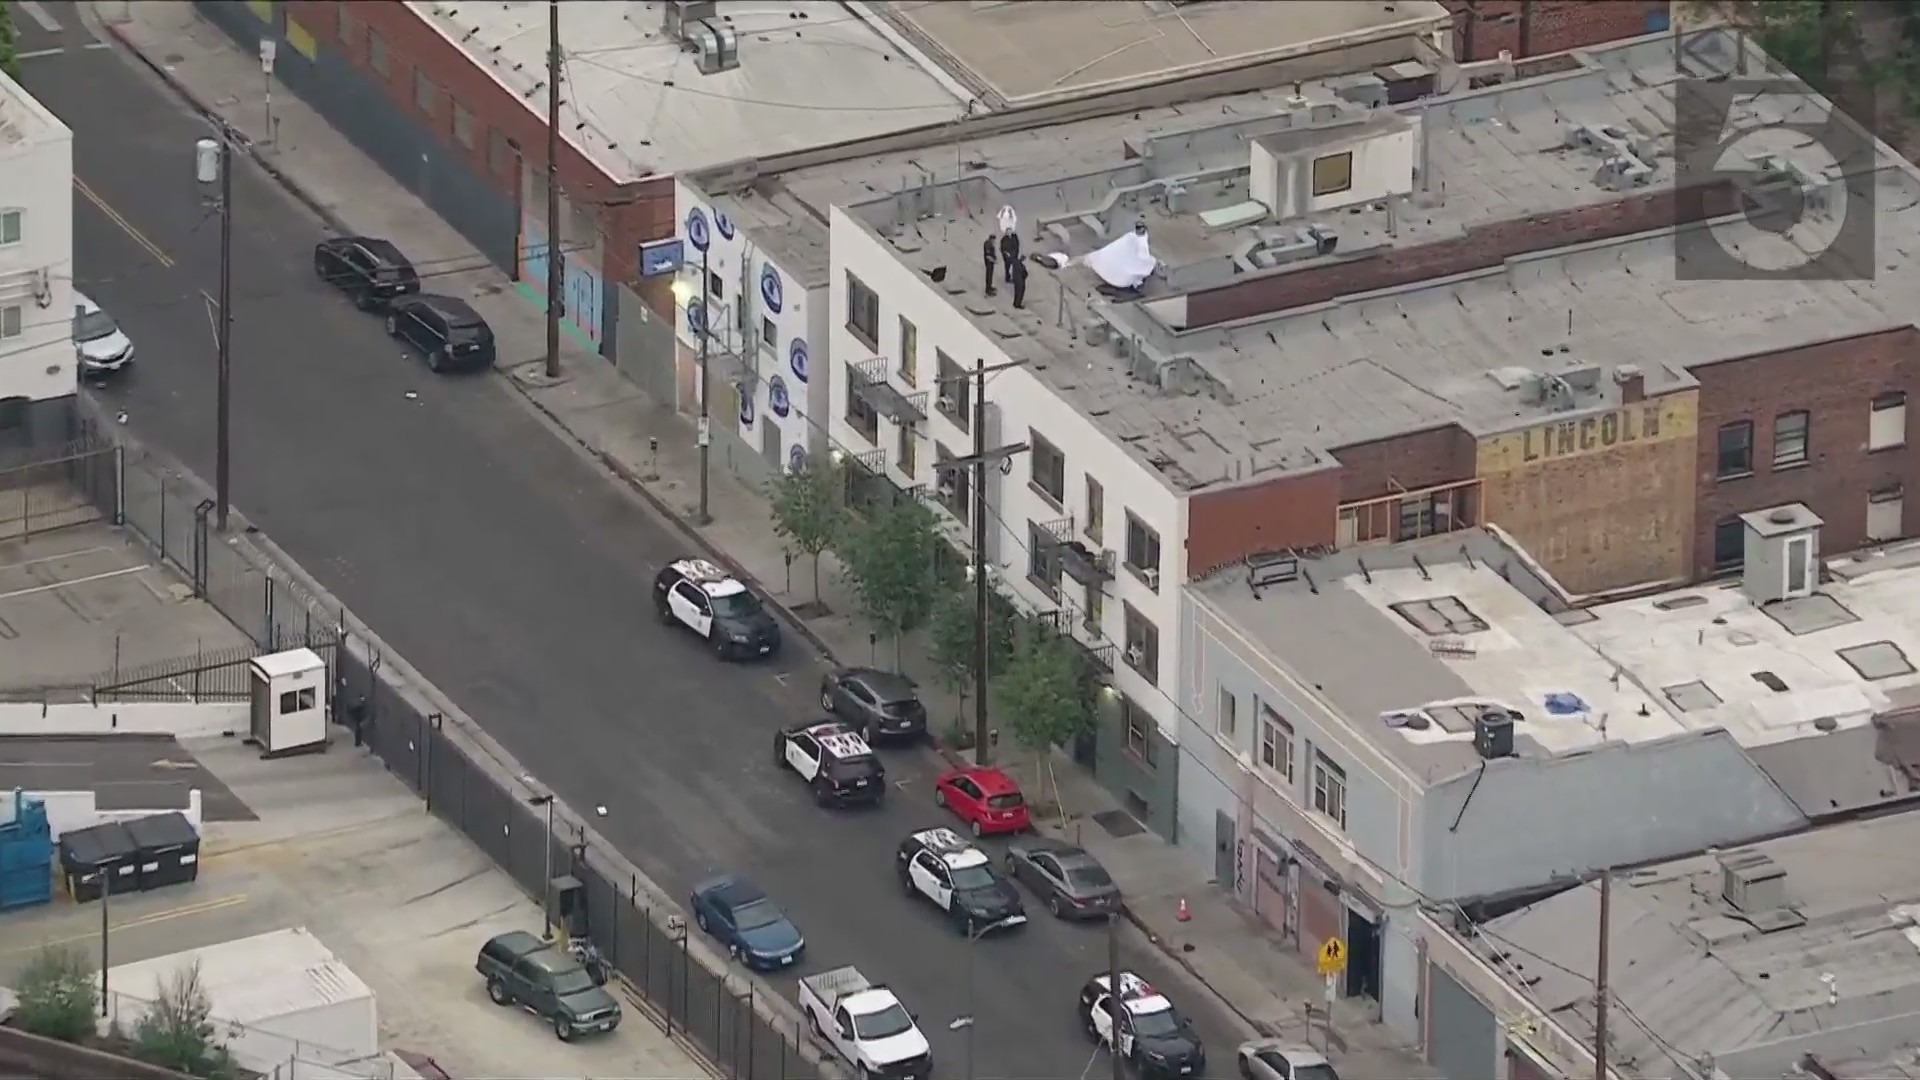 Police investigate a death on a downtown Los Angeles rooftop on May 17, 2021. (KTLA)